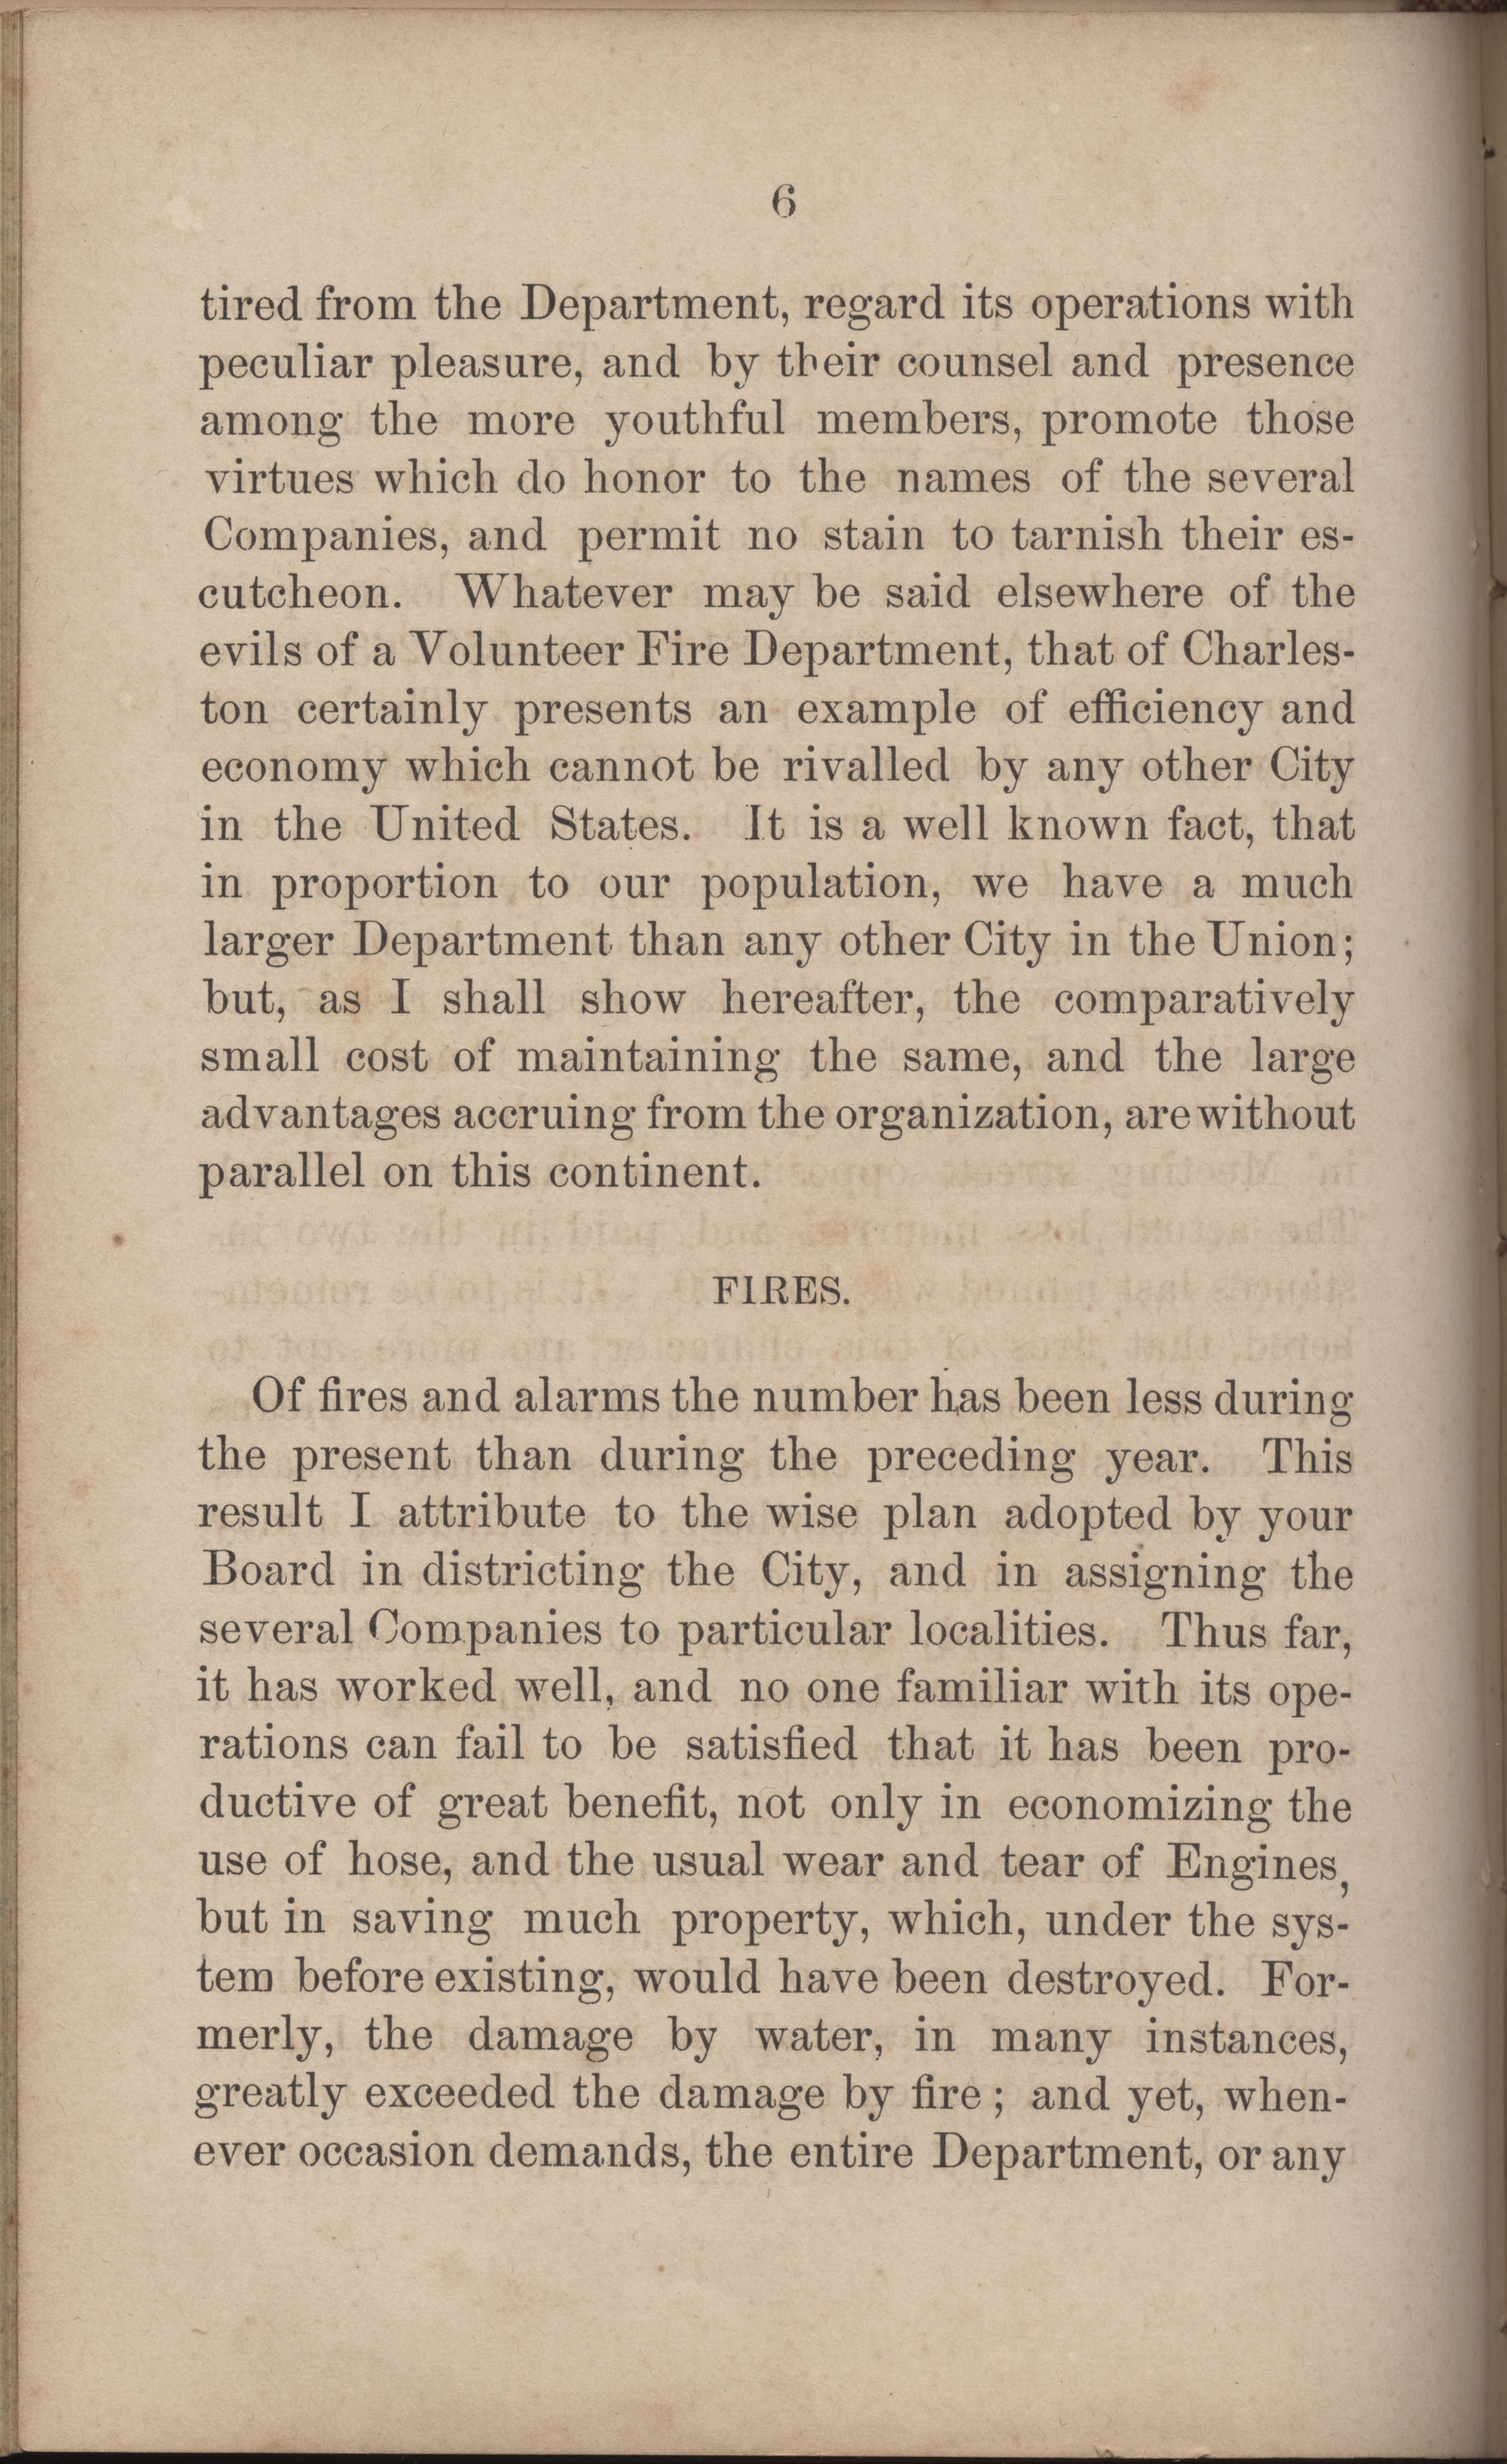 Annual Report of the Chief of the Fire Department of the City of Charleston, page 233